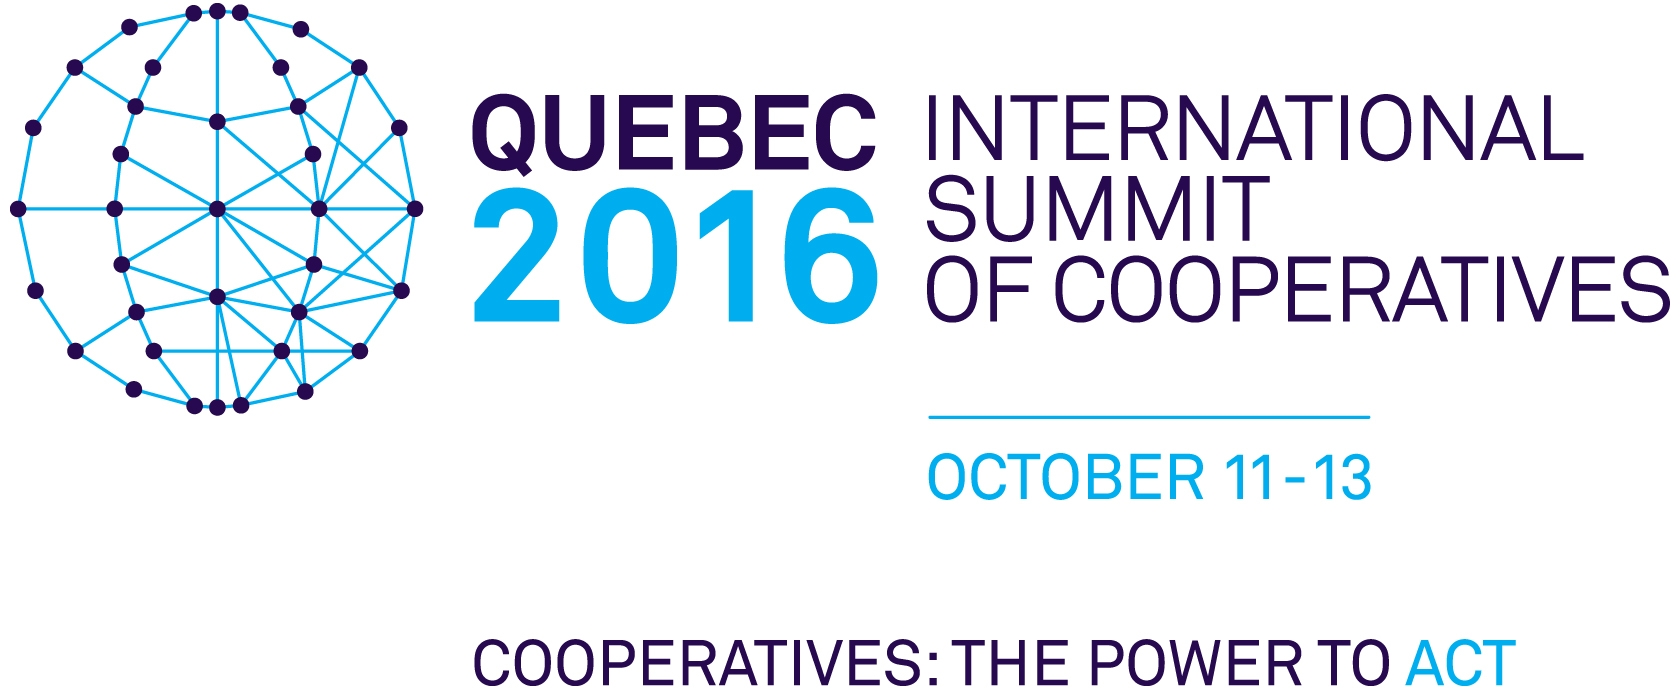 International Summit of Cooperatives 2016